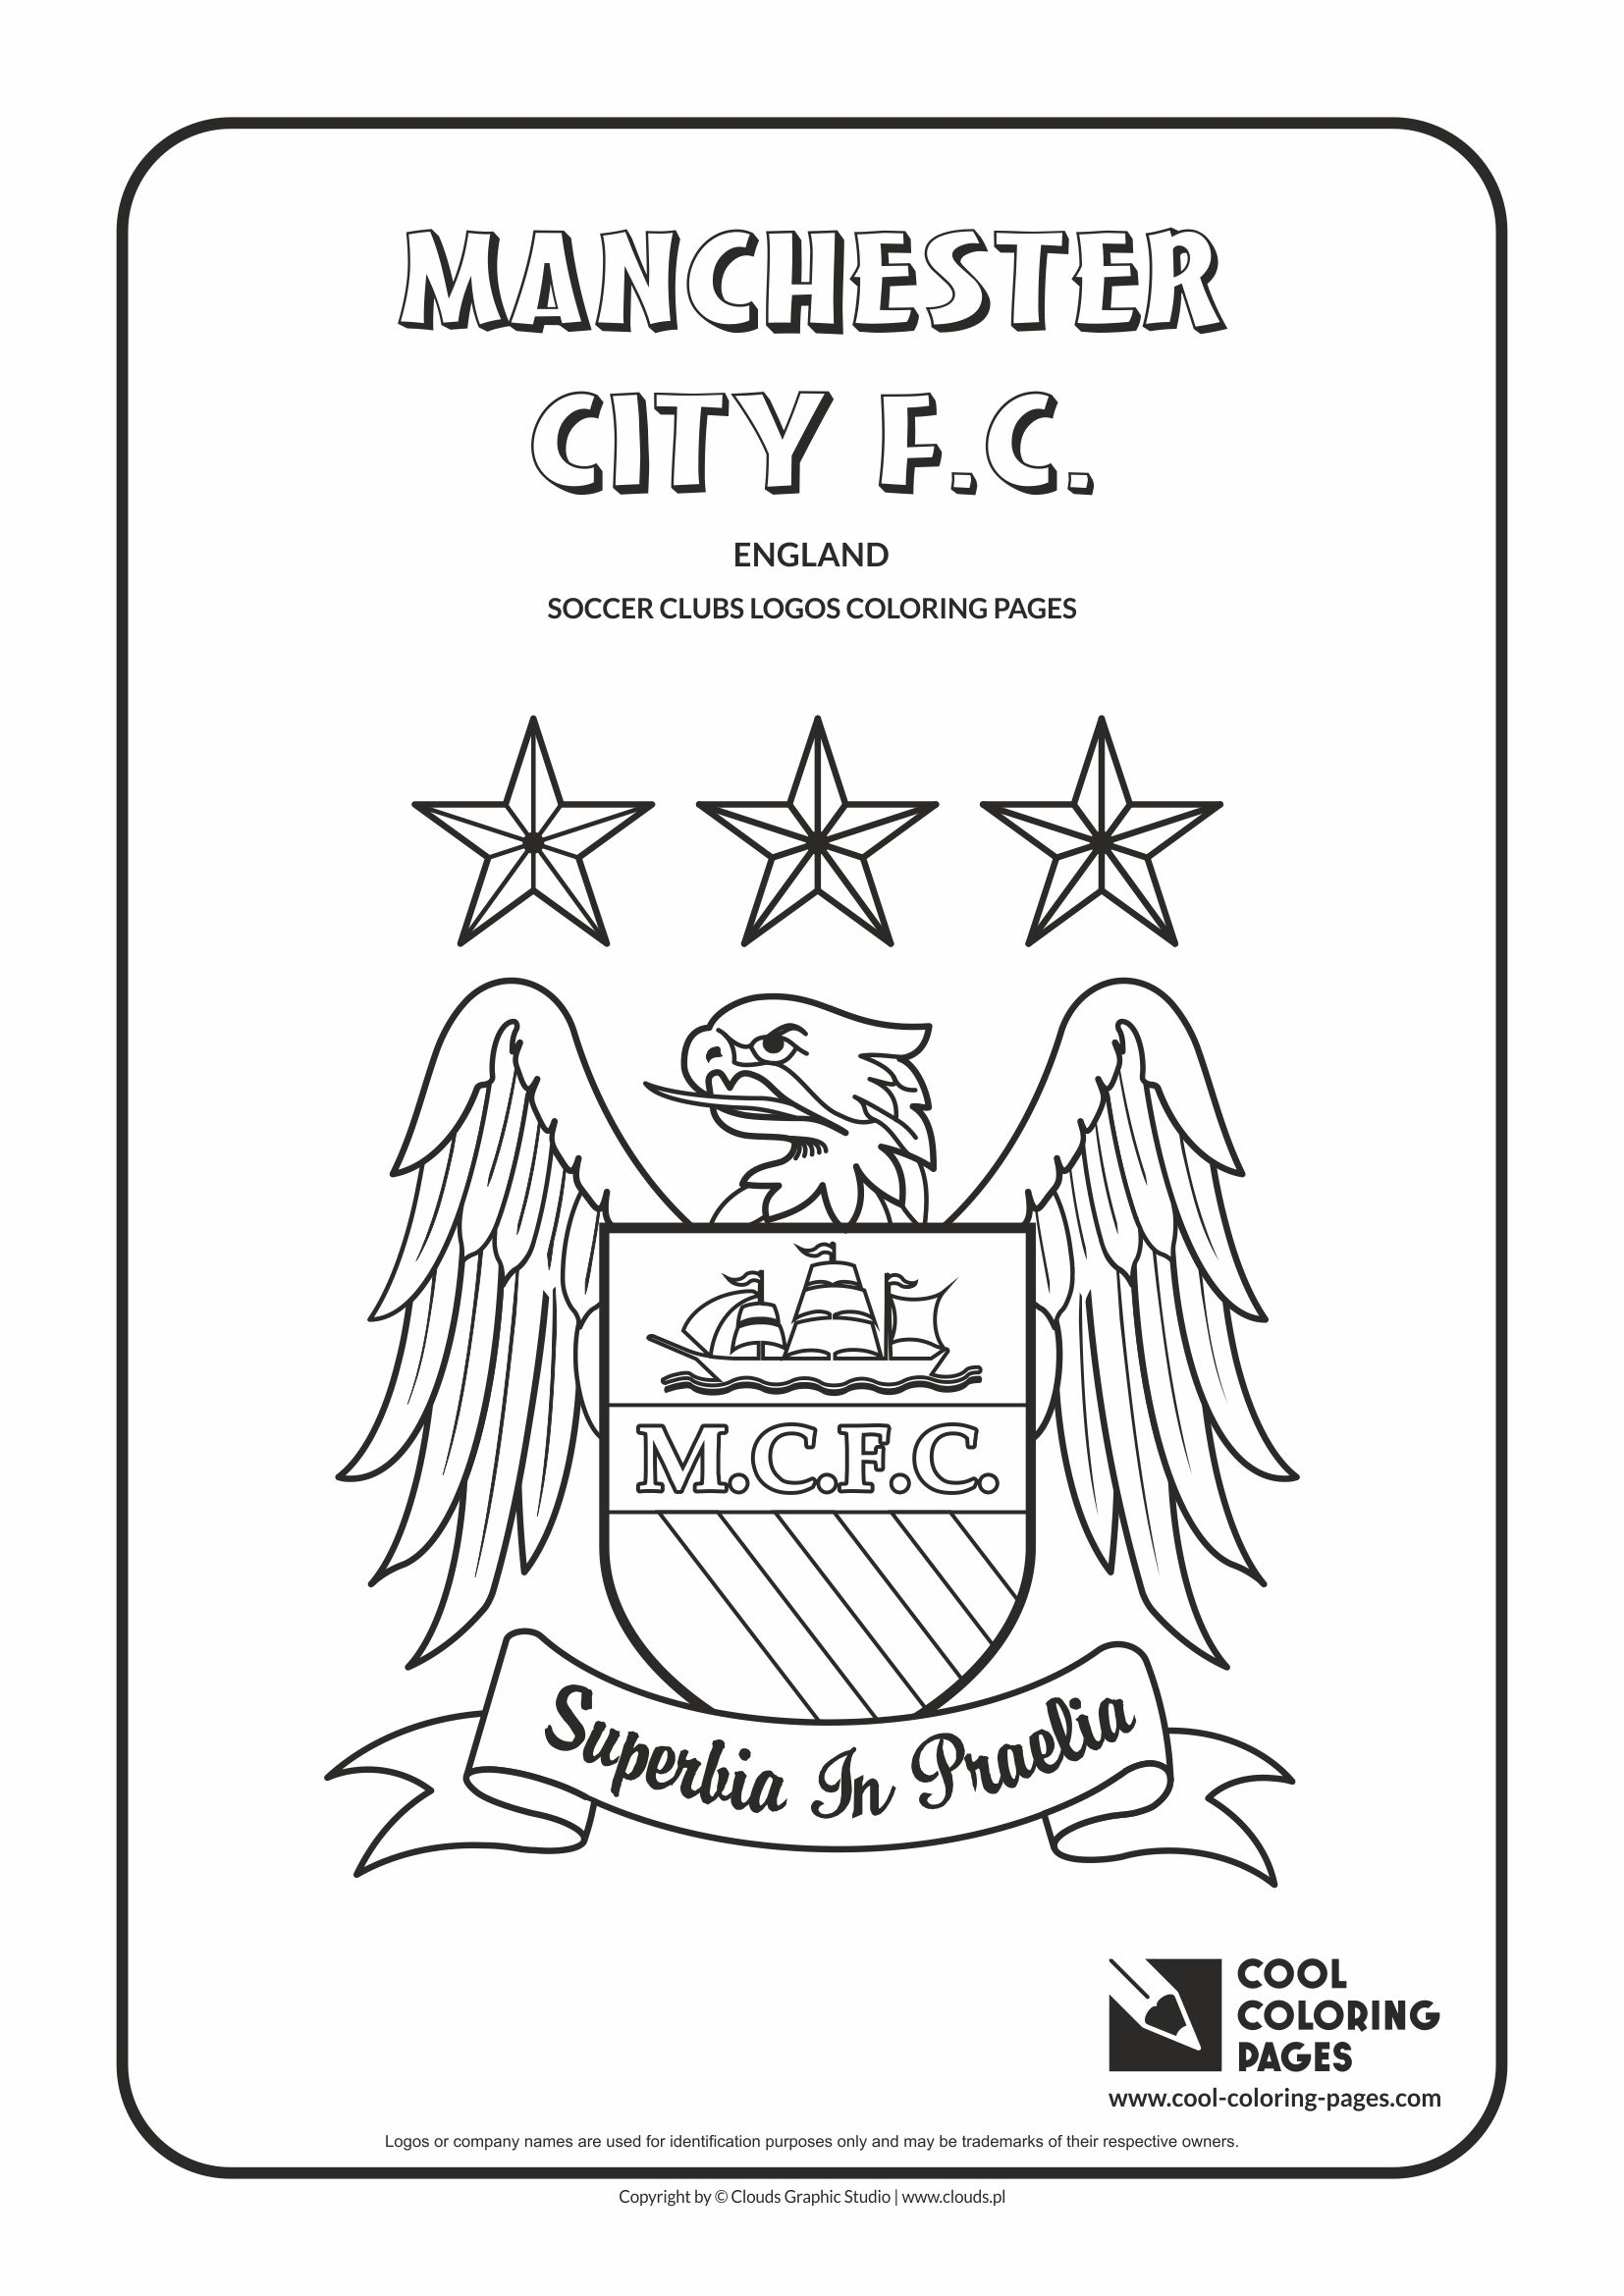 Cool Coloring Pages Soccer clubs logos - Cool Coloring